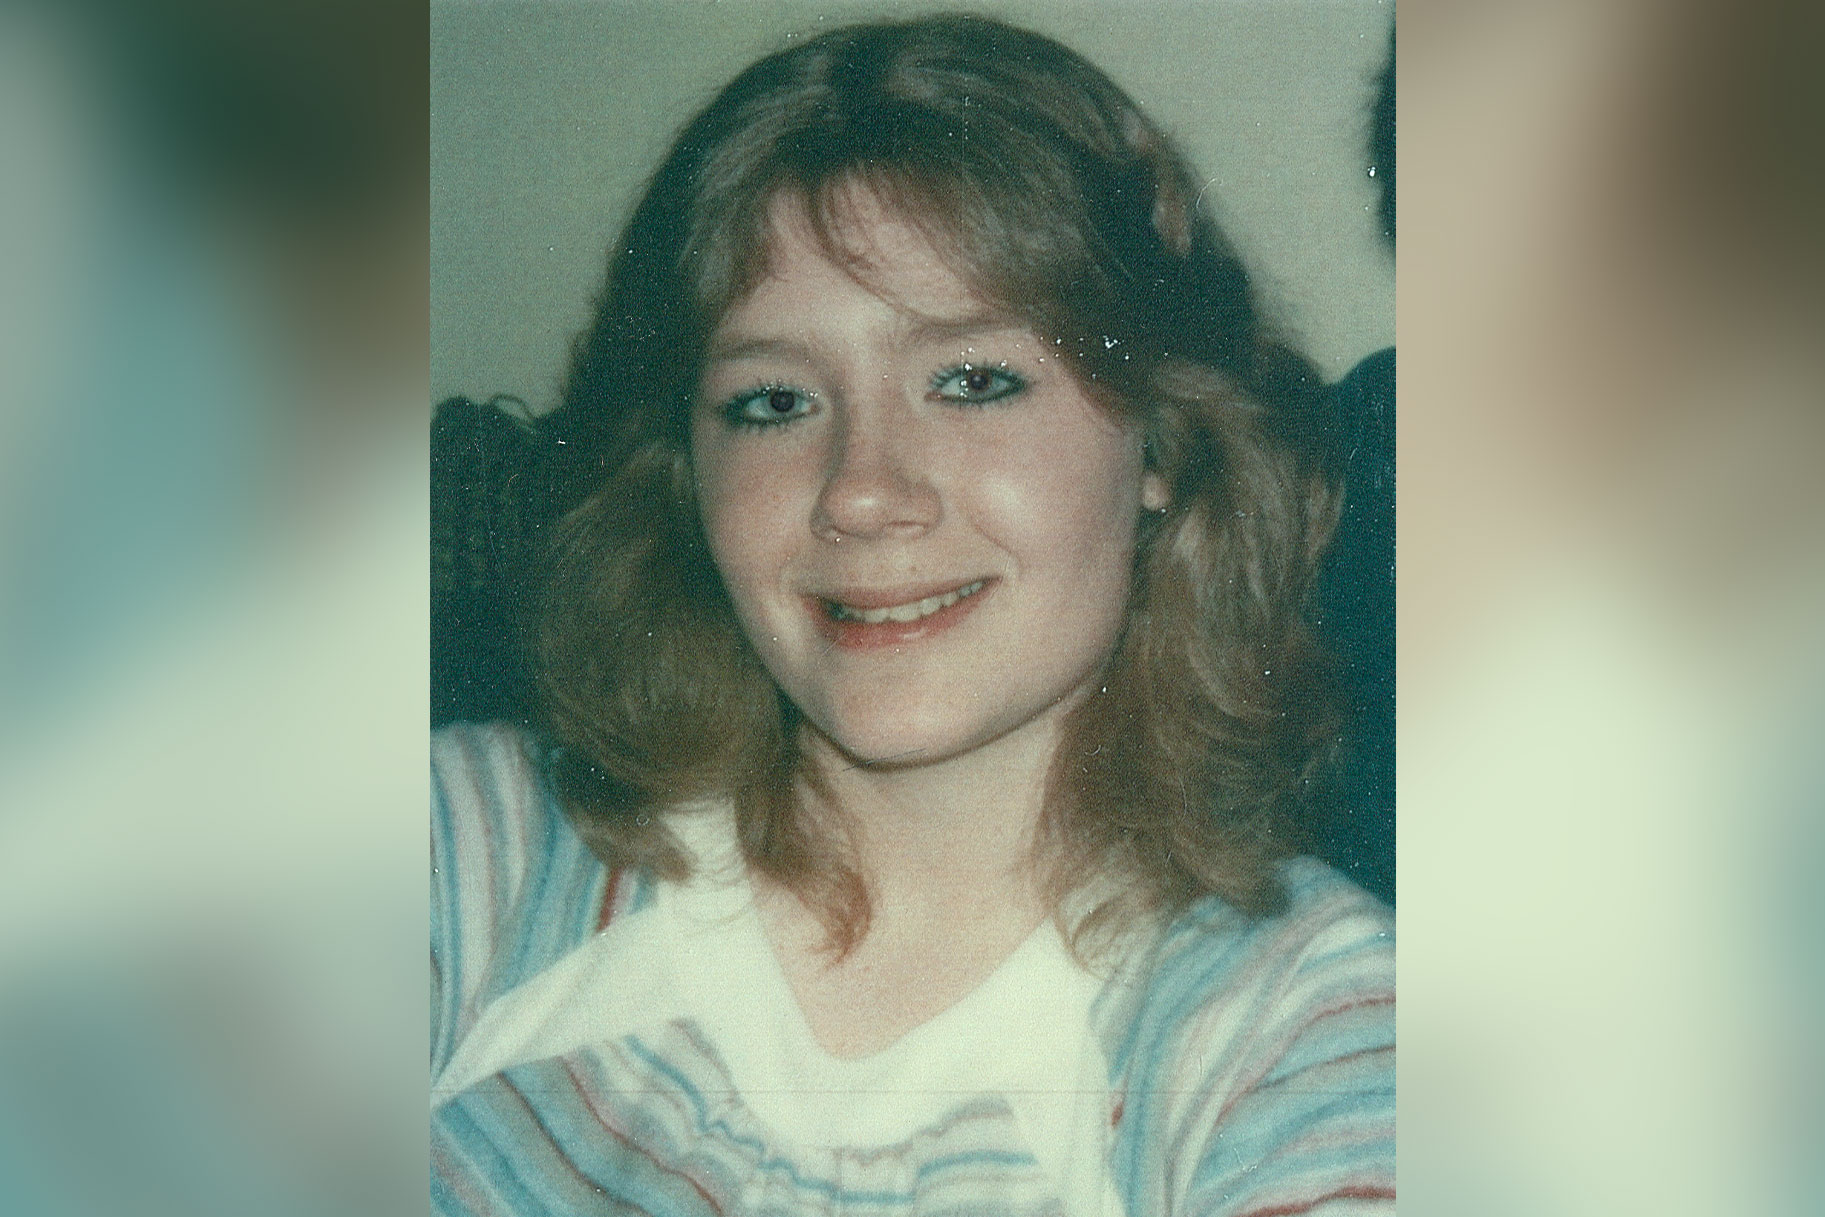 Cold Case Murder Of 18-Year-Old Mother Solved After Exhumation Scares Killer Into Plot To Fake His Death